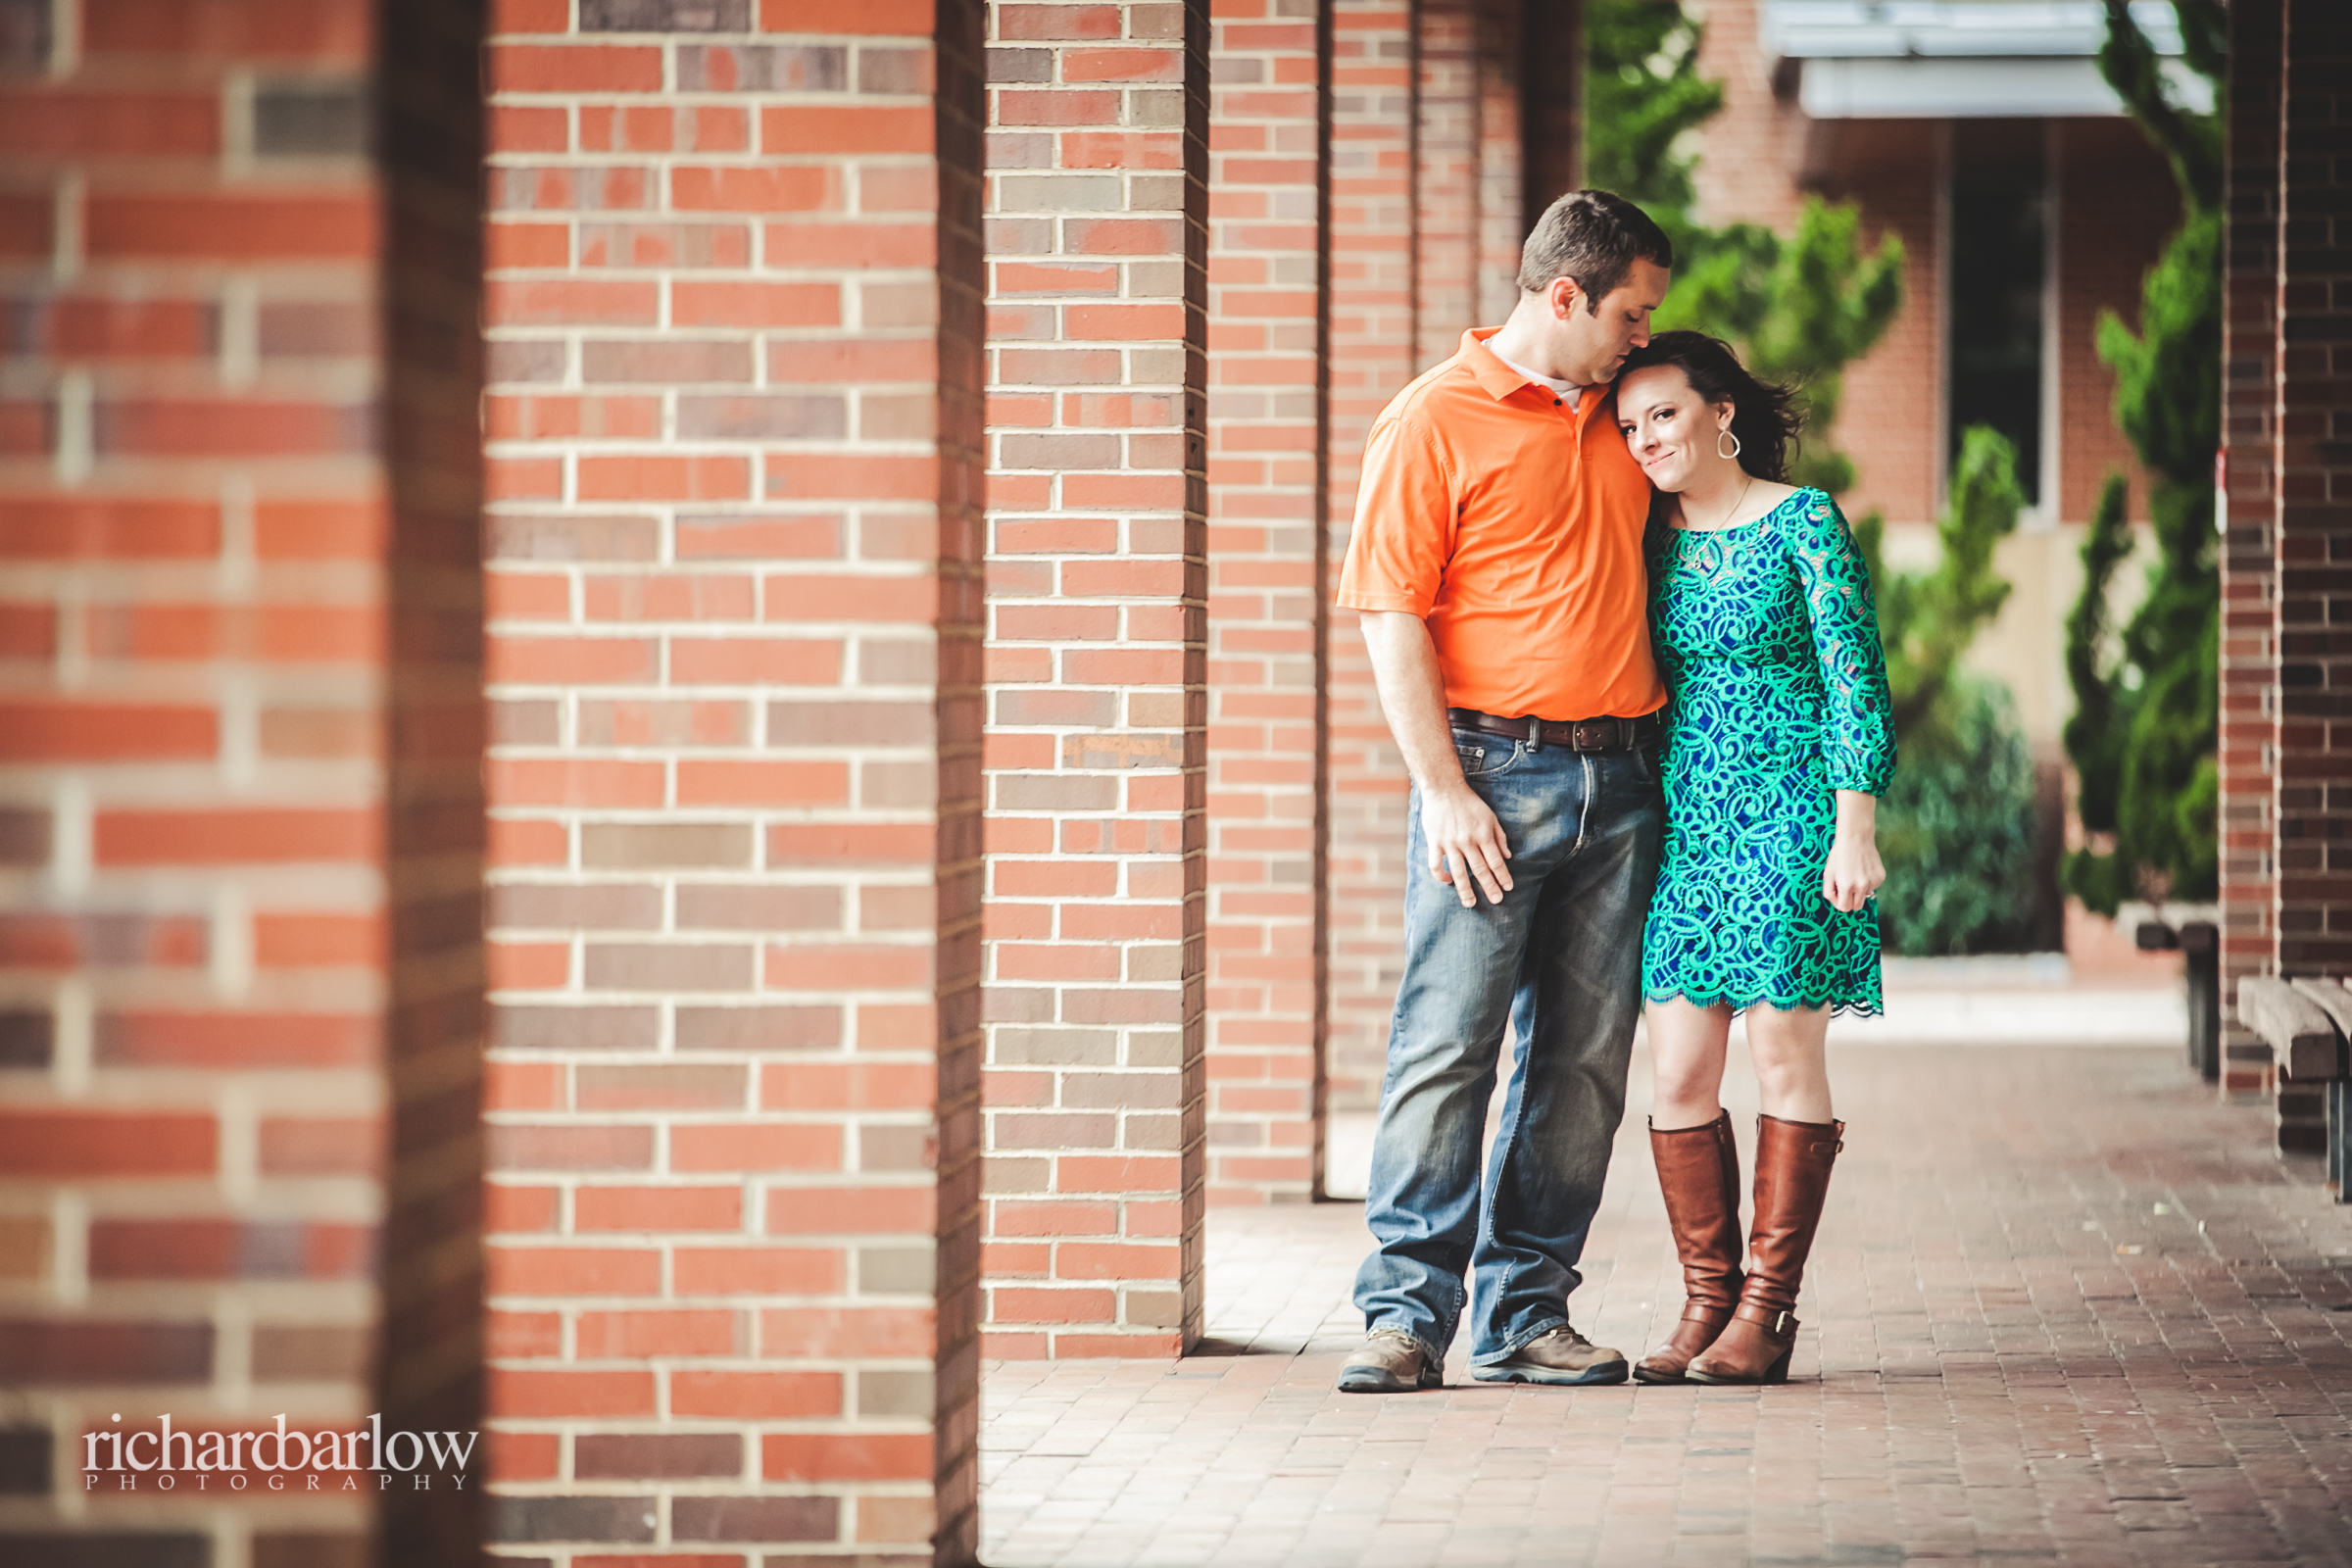 richard barlow photography - Jason and Karen Engagement Session NC State-10.jpg